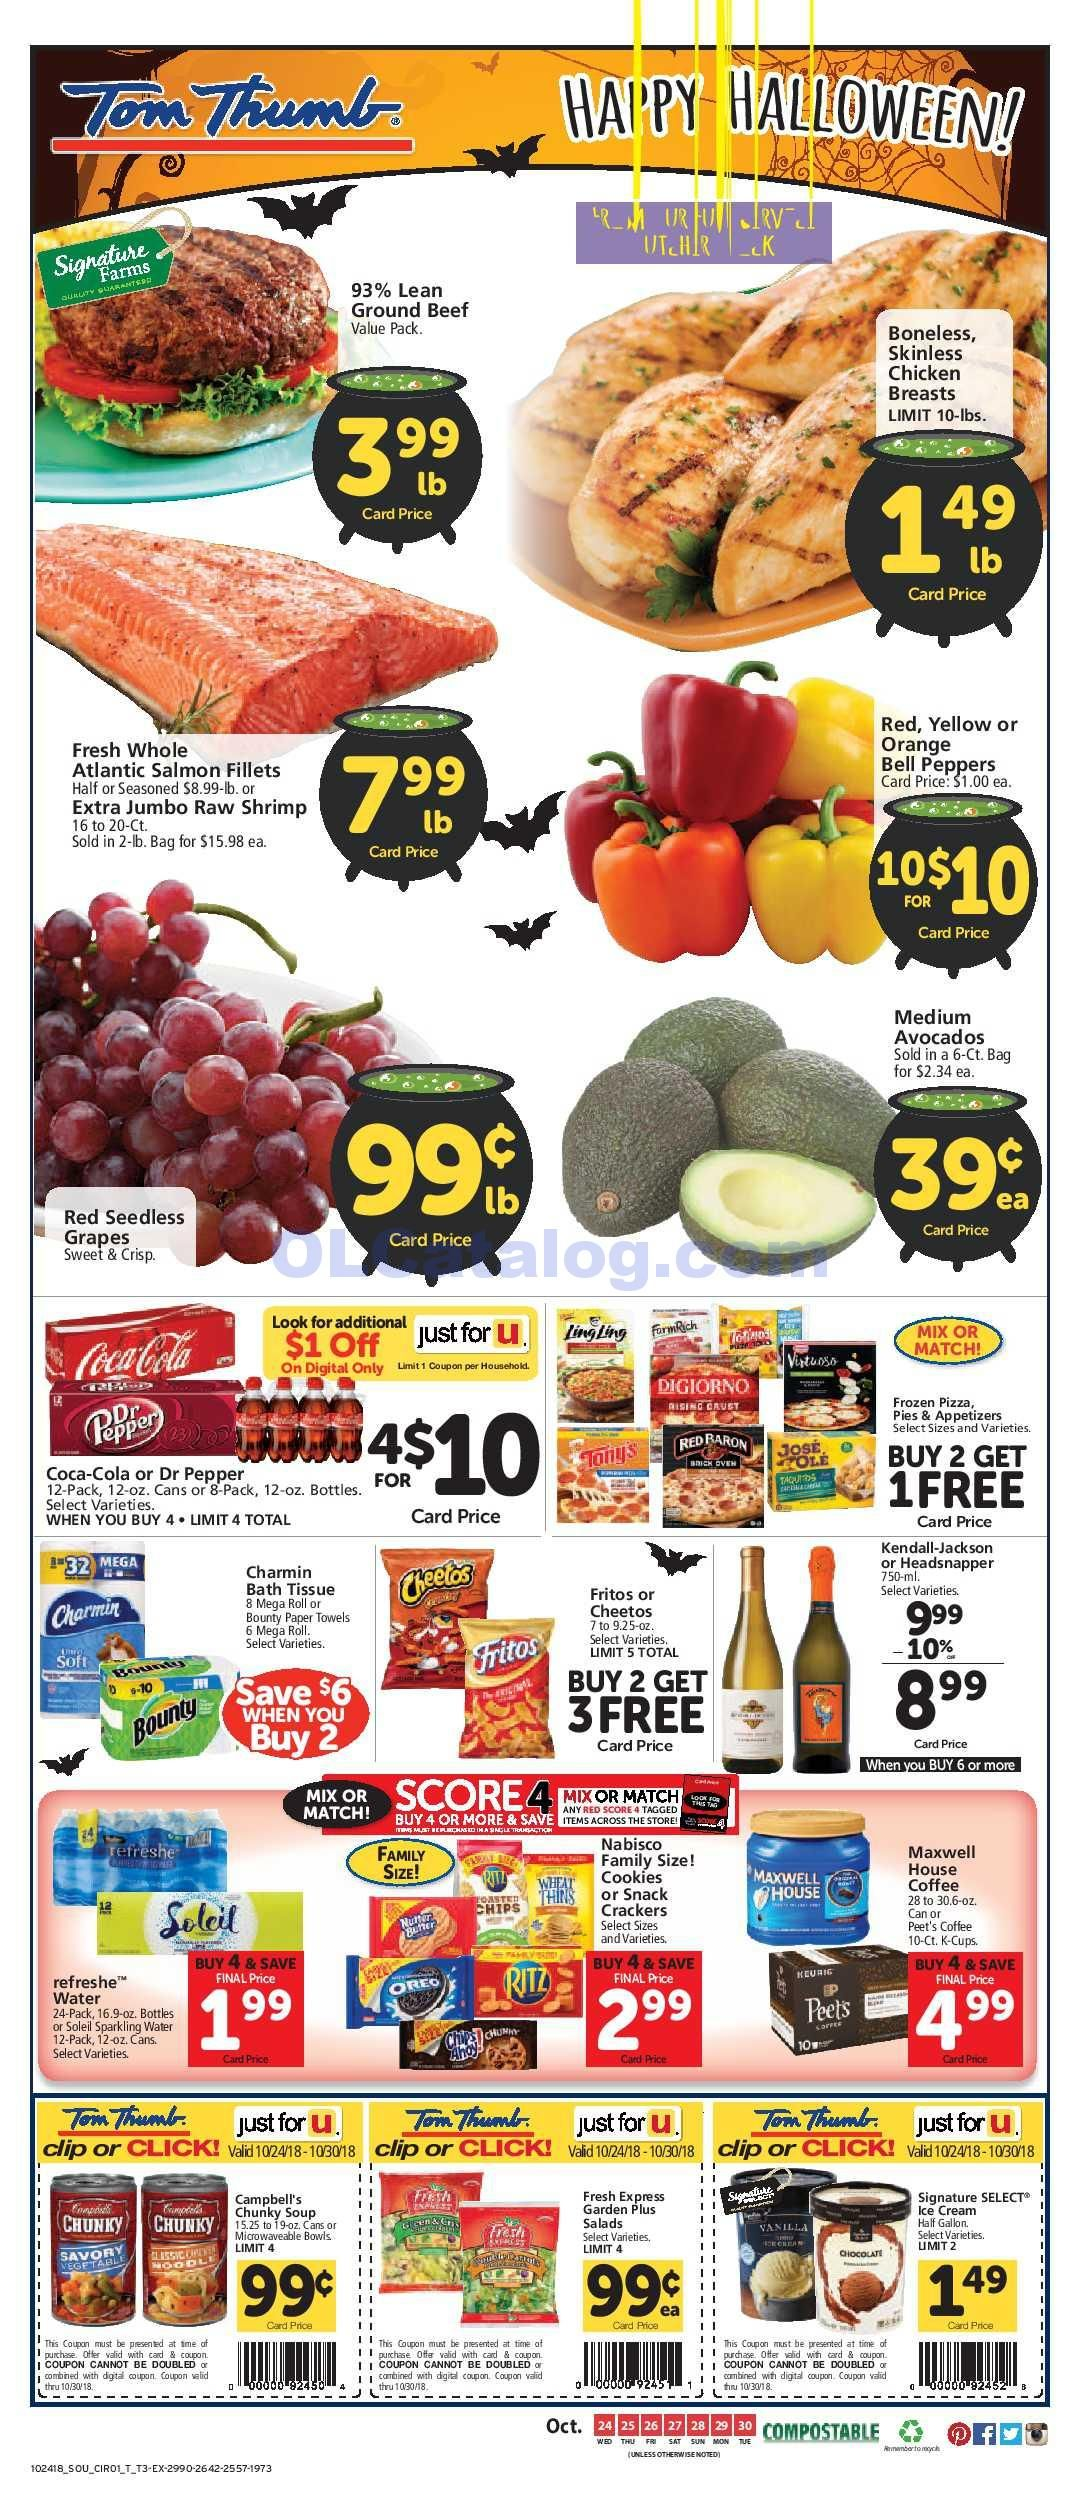 Tom Thumb Weekly Ad October 24 30 2018 View The Latest Flyer And Weekly Circular Ad For Tom Thumb Here Likewise You Can Find The Digital Coupons Grocery S